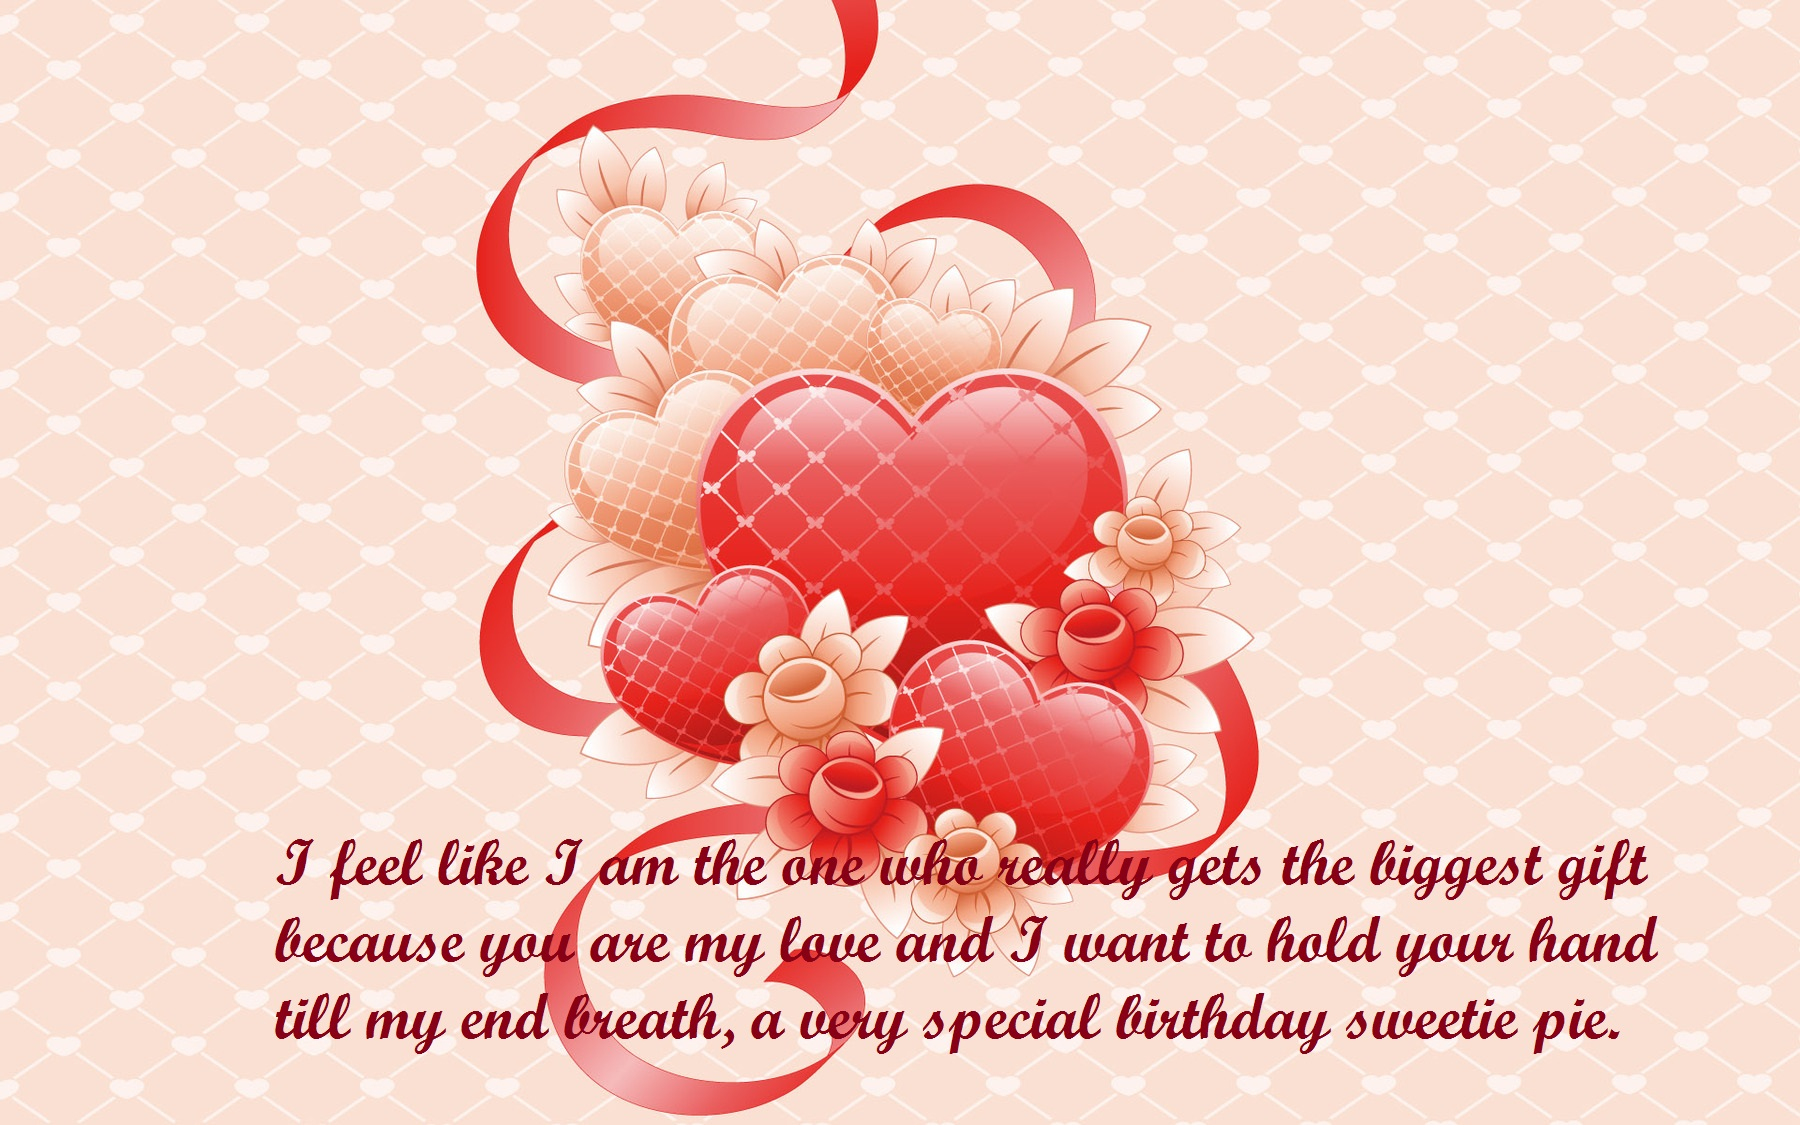 Happy birthday best wishes for love best wishes birthday wishes for my love m4hsunfo